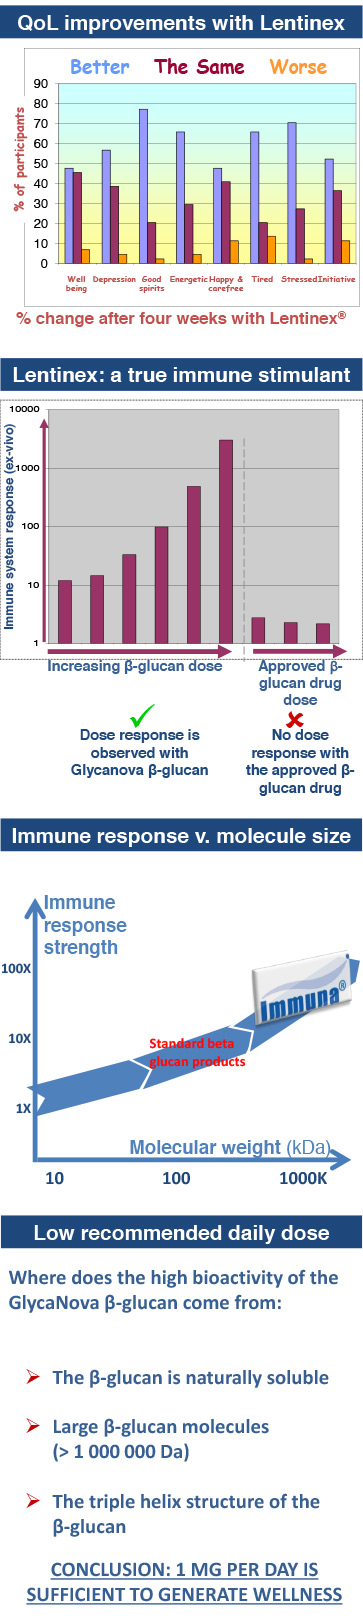 Immuna science page